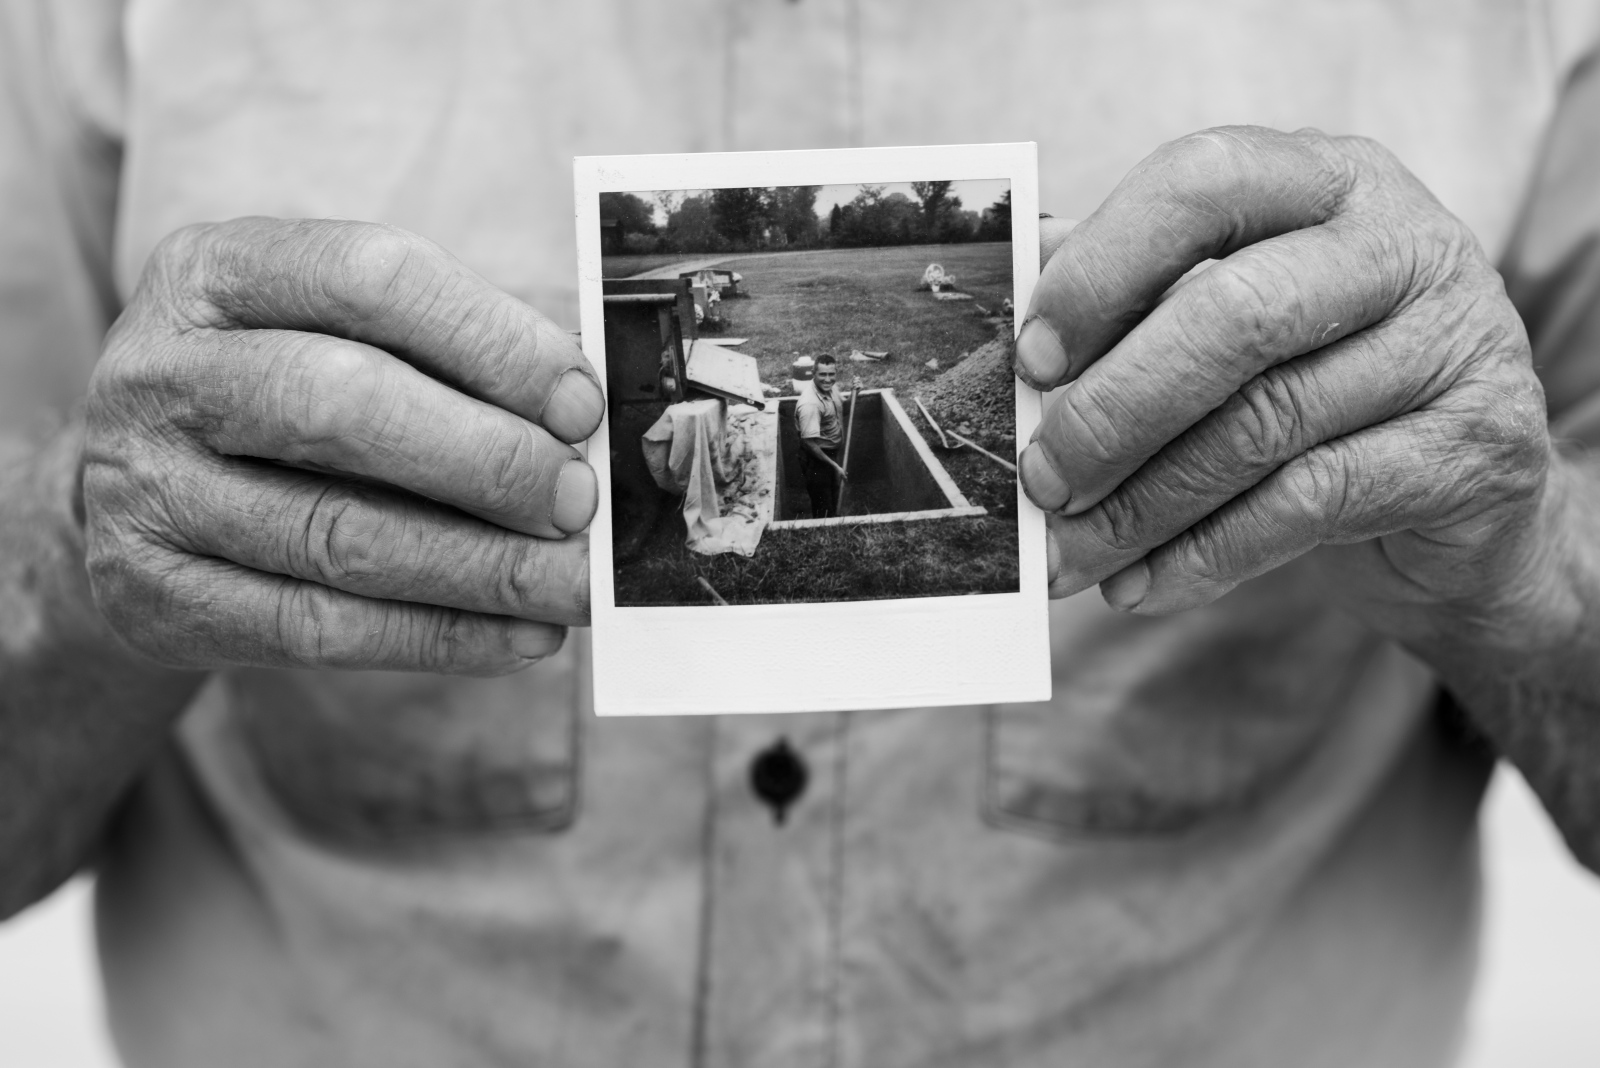 In June 2015, Dorsel Bibbee holds a photograph of himself as a younger man standing in a grave. Bibbee believes the photograph is from the late 1970s or early 80s, but he's no longer able to remember who took it and gave it to him. He has been digging graves in southeast Ohio for six decades.